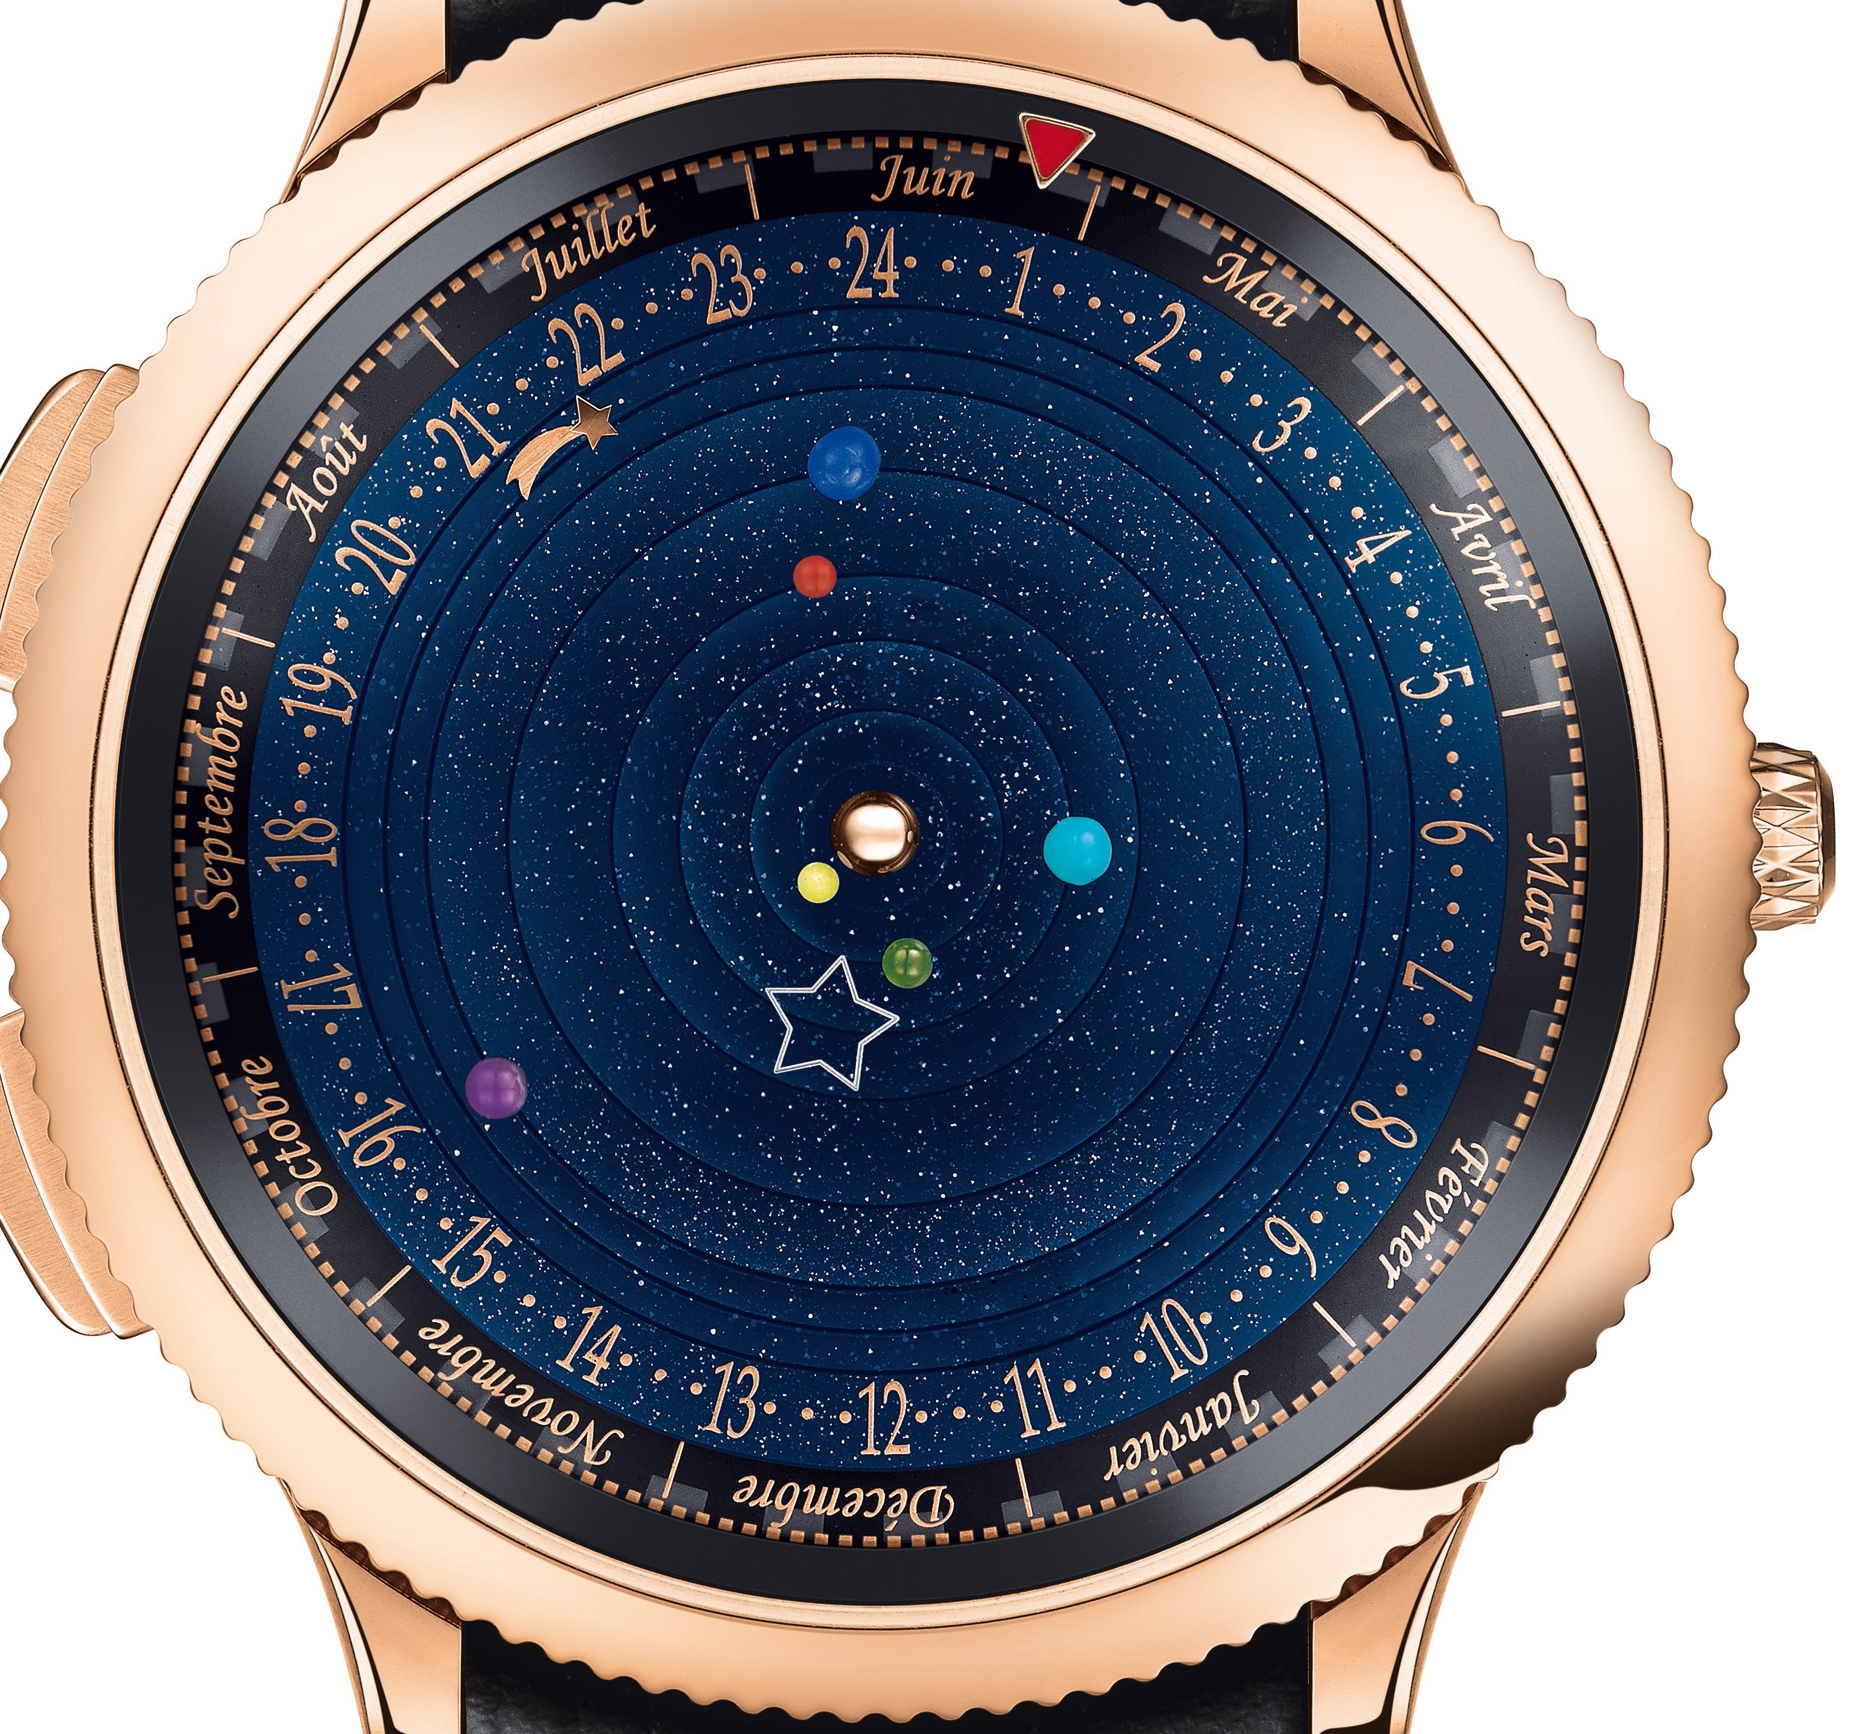 The Midnight Planétarium Poetic Complication by Van Cleef & Arpels